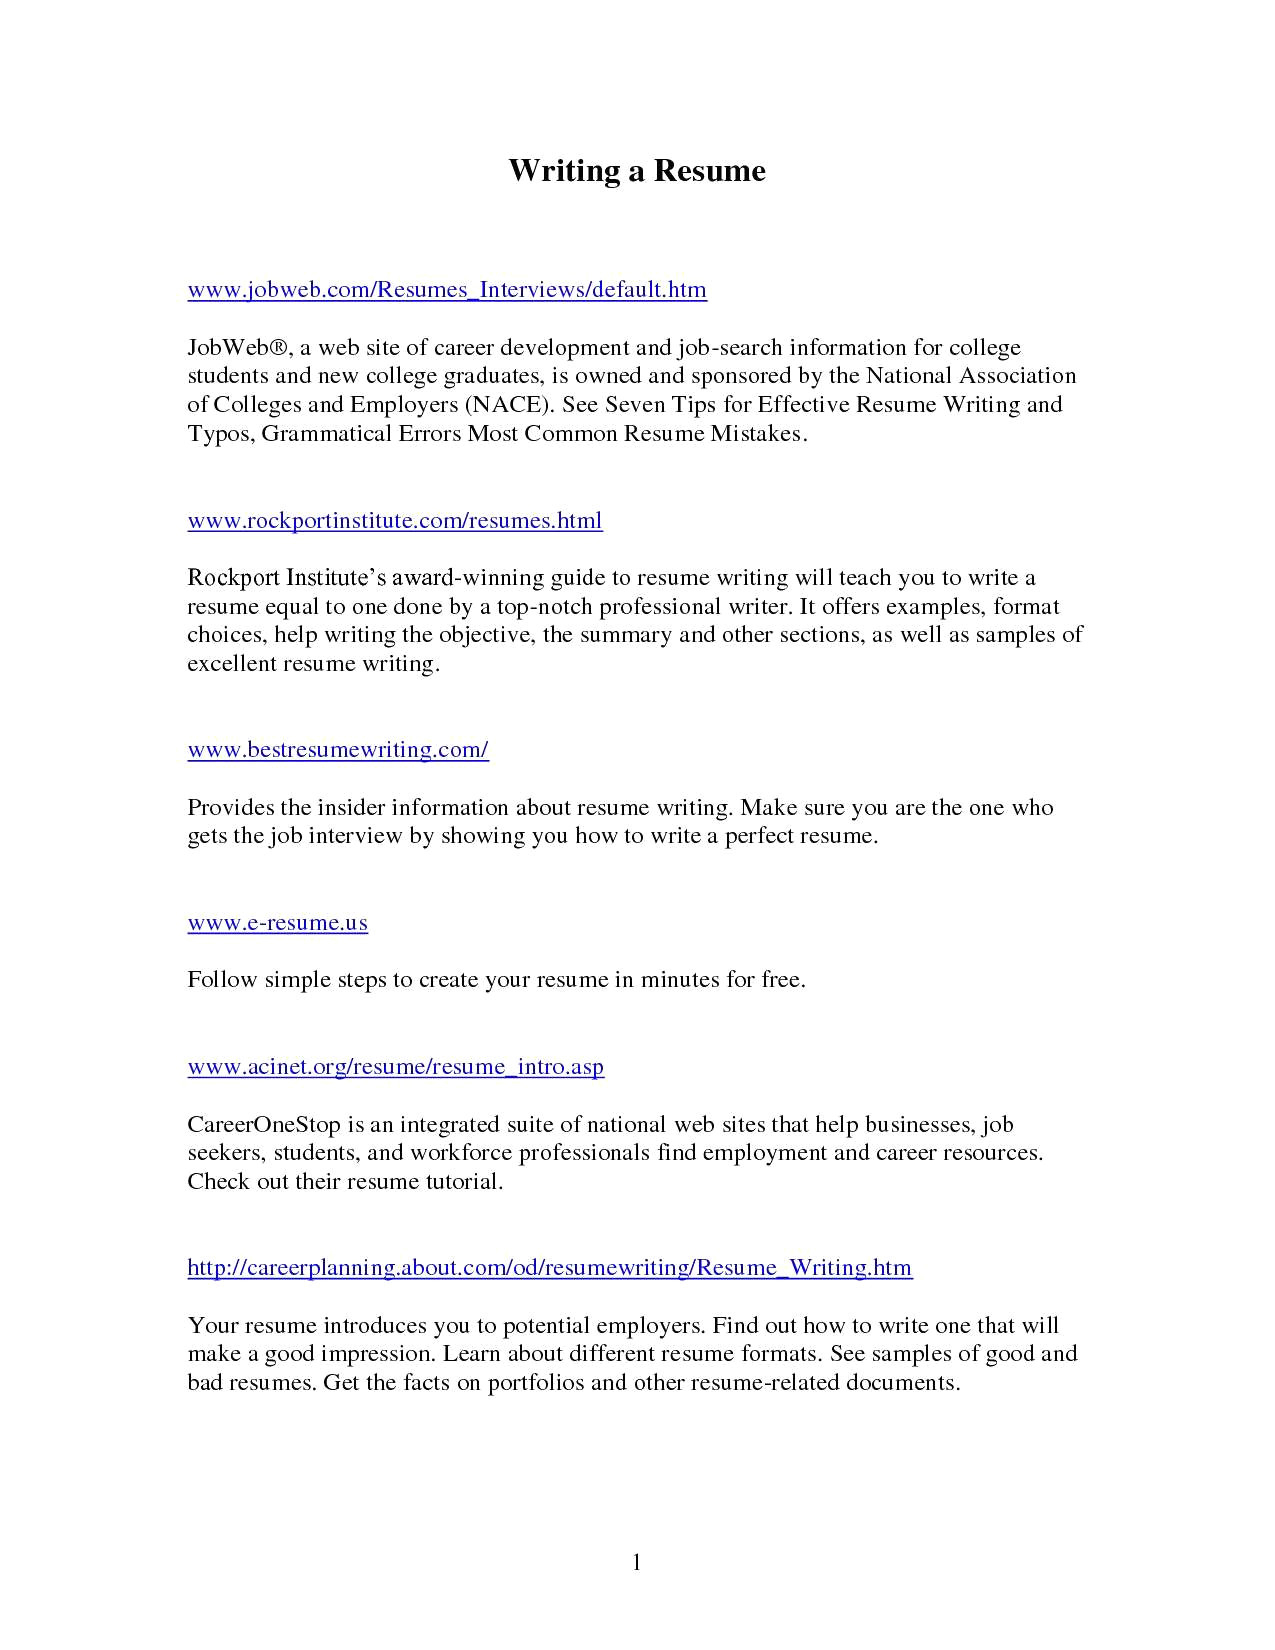 Resume Making Tips - 42 Awesome Writing A Professional Resume